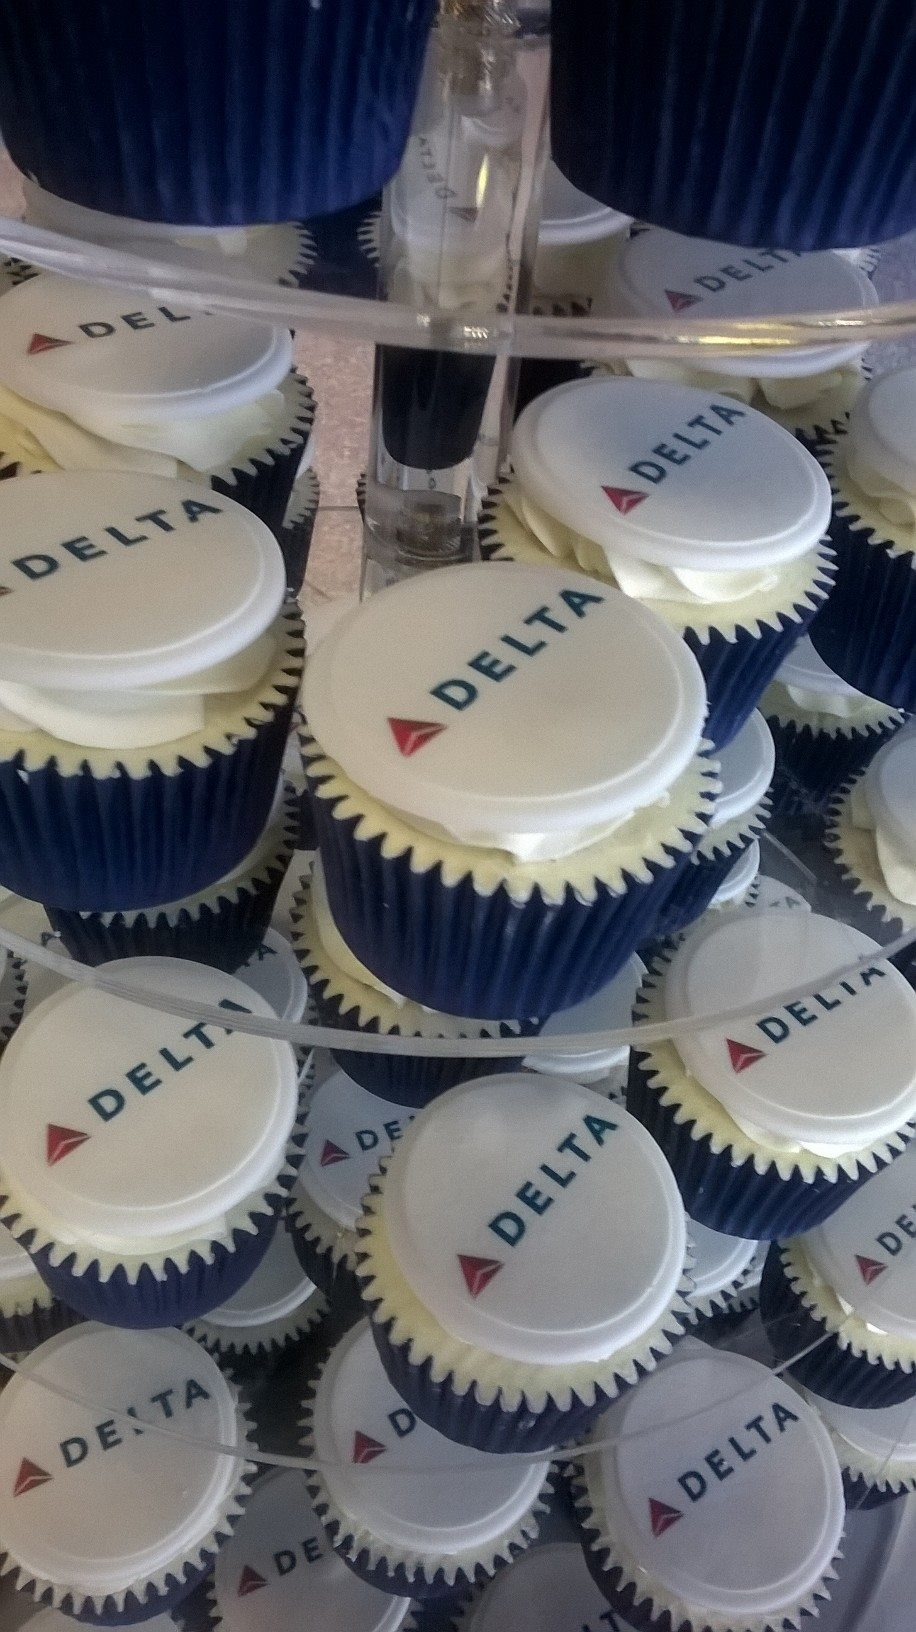 Delta Airlines Branded Cupcakes